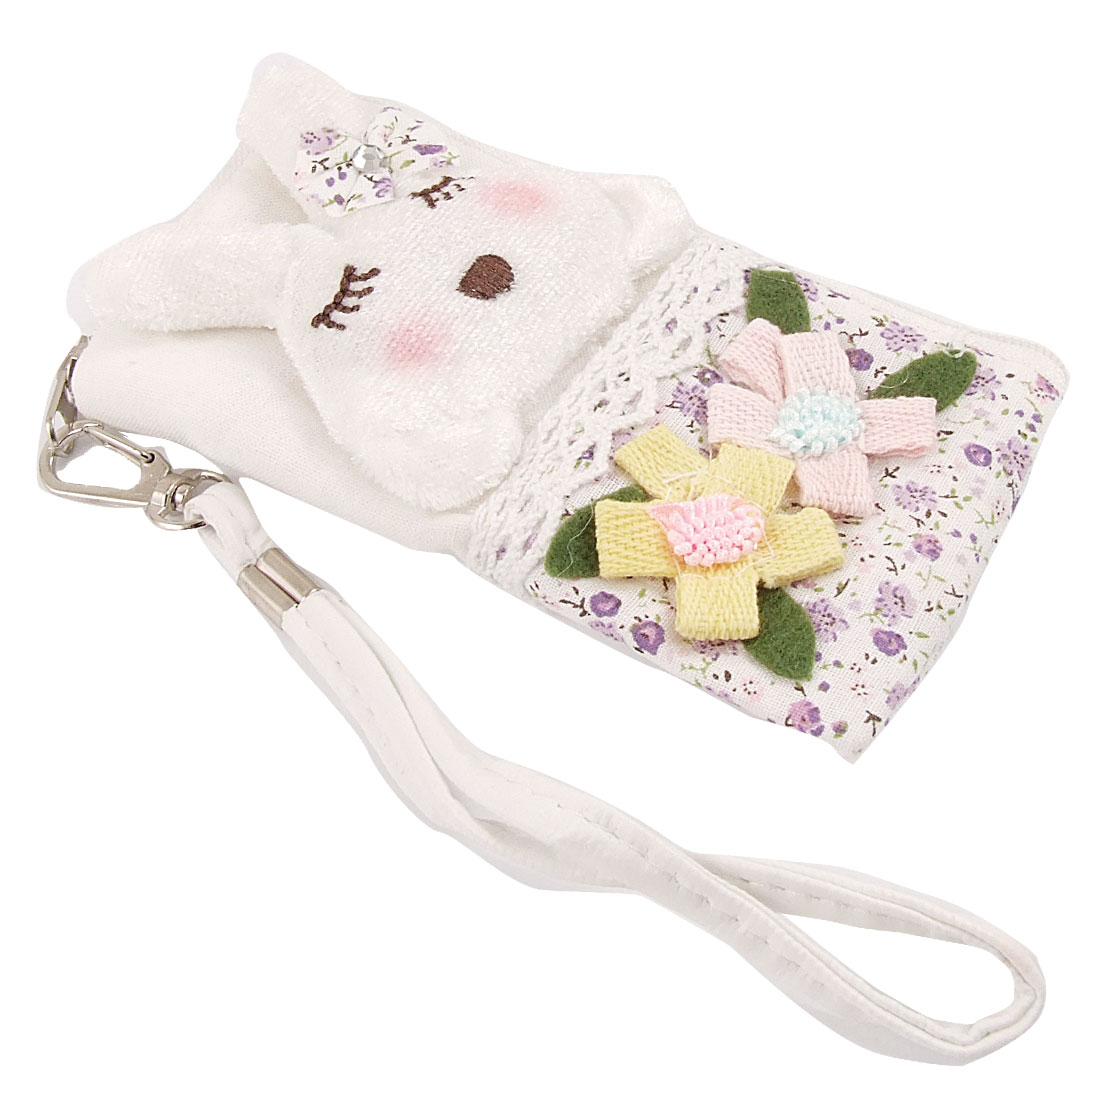 Zipper Closure Rabbit Decor Pouch Bag Holder w Strap for iPhone 4 4G 4S